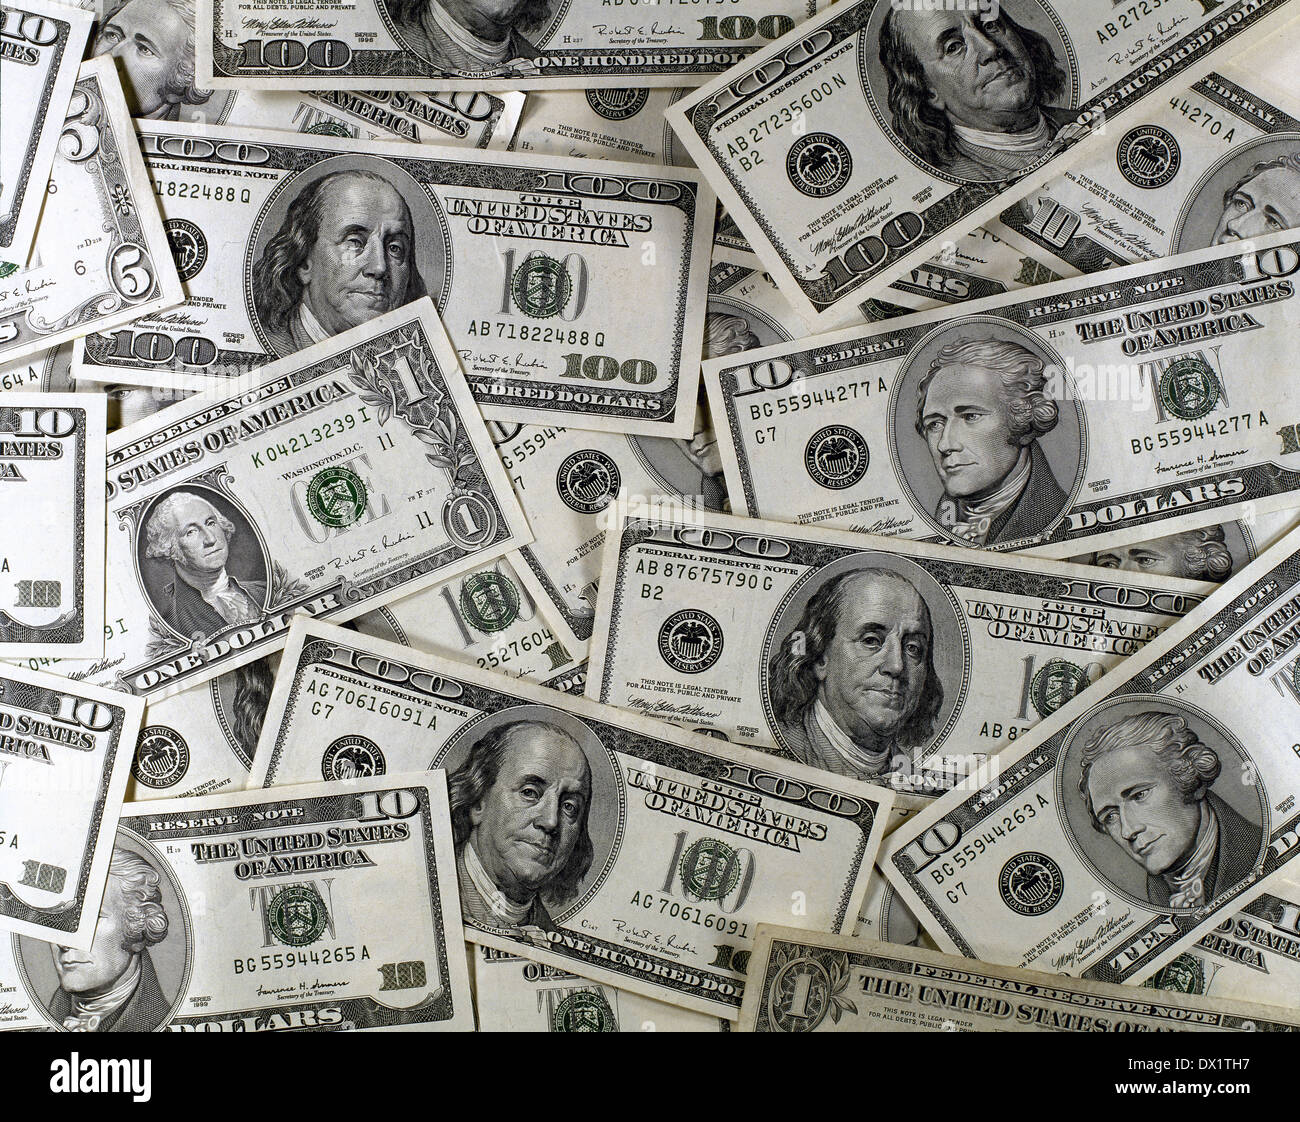 Still life of U.S. dollars. - Stock Image